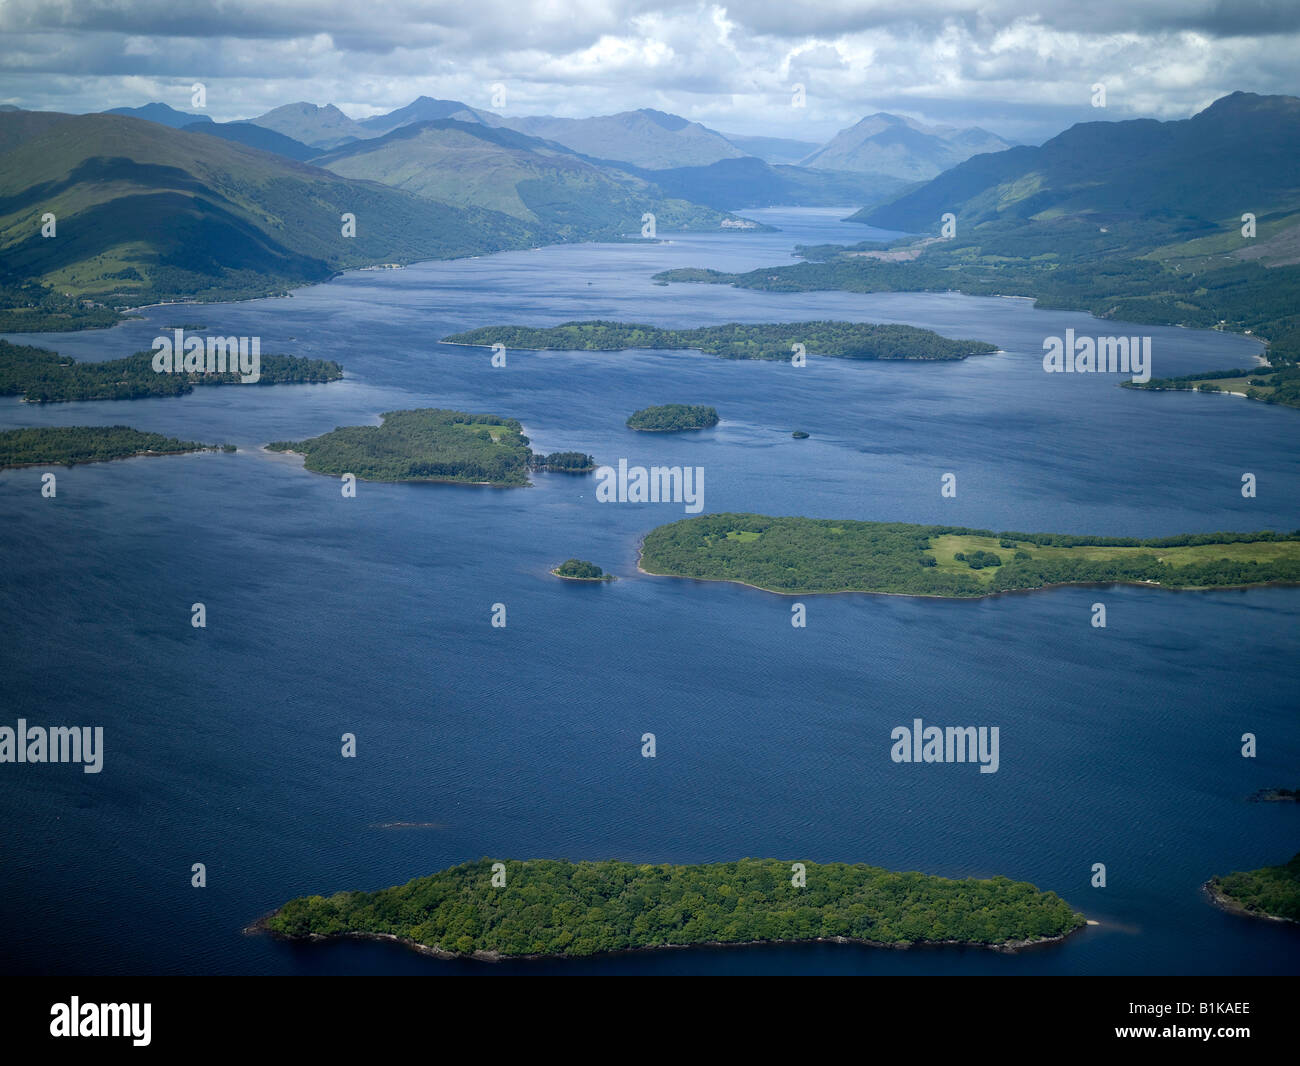 Loch Lomond & Islands from the air, Highland Scotland - Stock Image